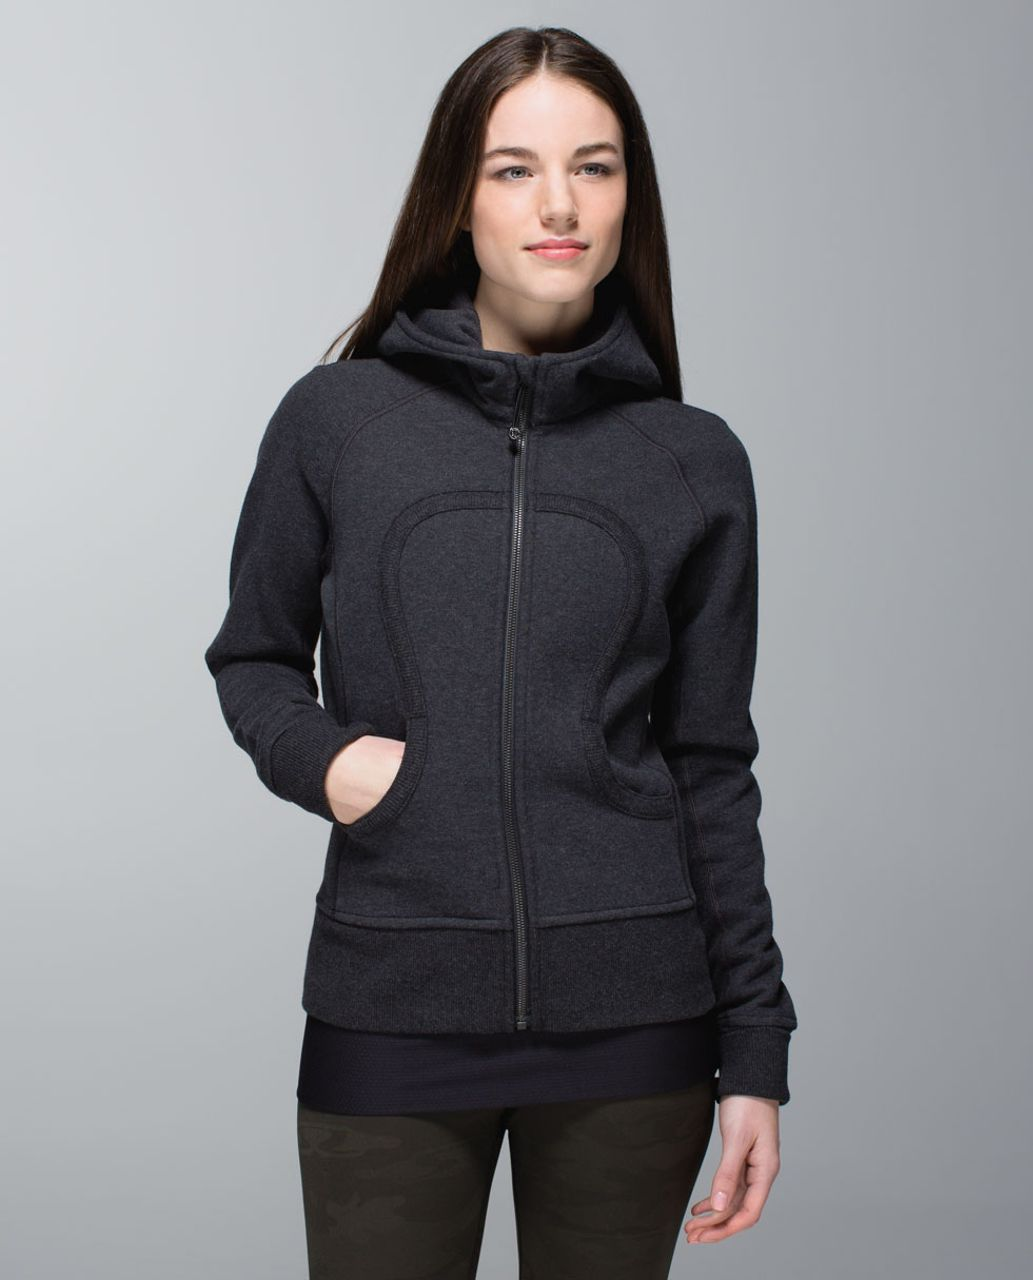 Lululemon Scuba Hoodie *Stretch (Lined Hood) - Heathered Black / Soot Light / Heathered Black